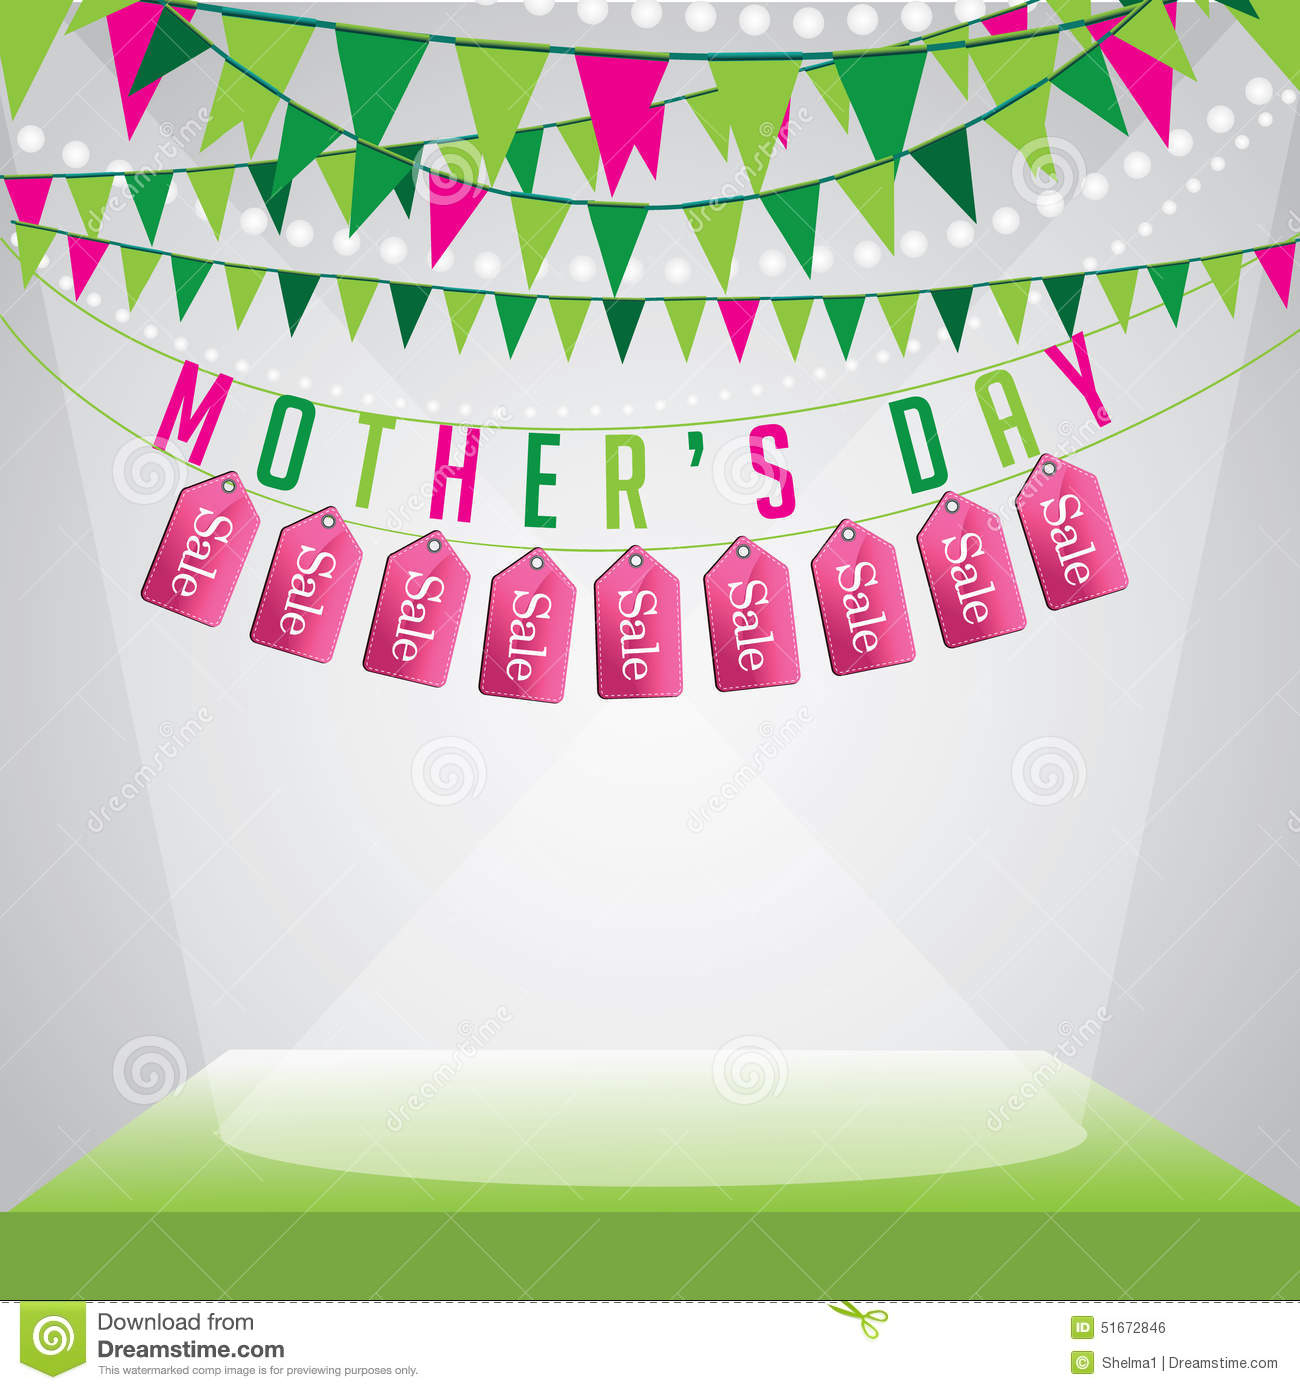 Mothers Day Storewide Sale Template: Mothers Day Sale Background EPS 10 Vector Stock Vector